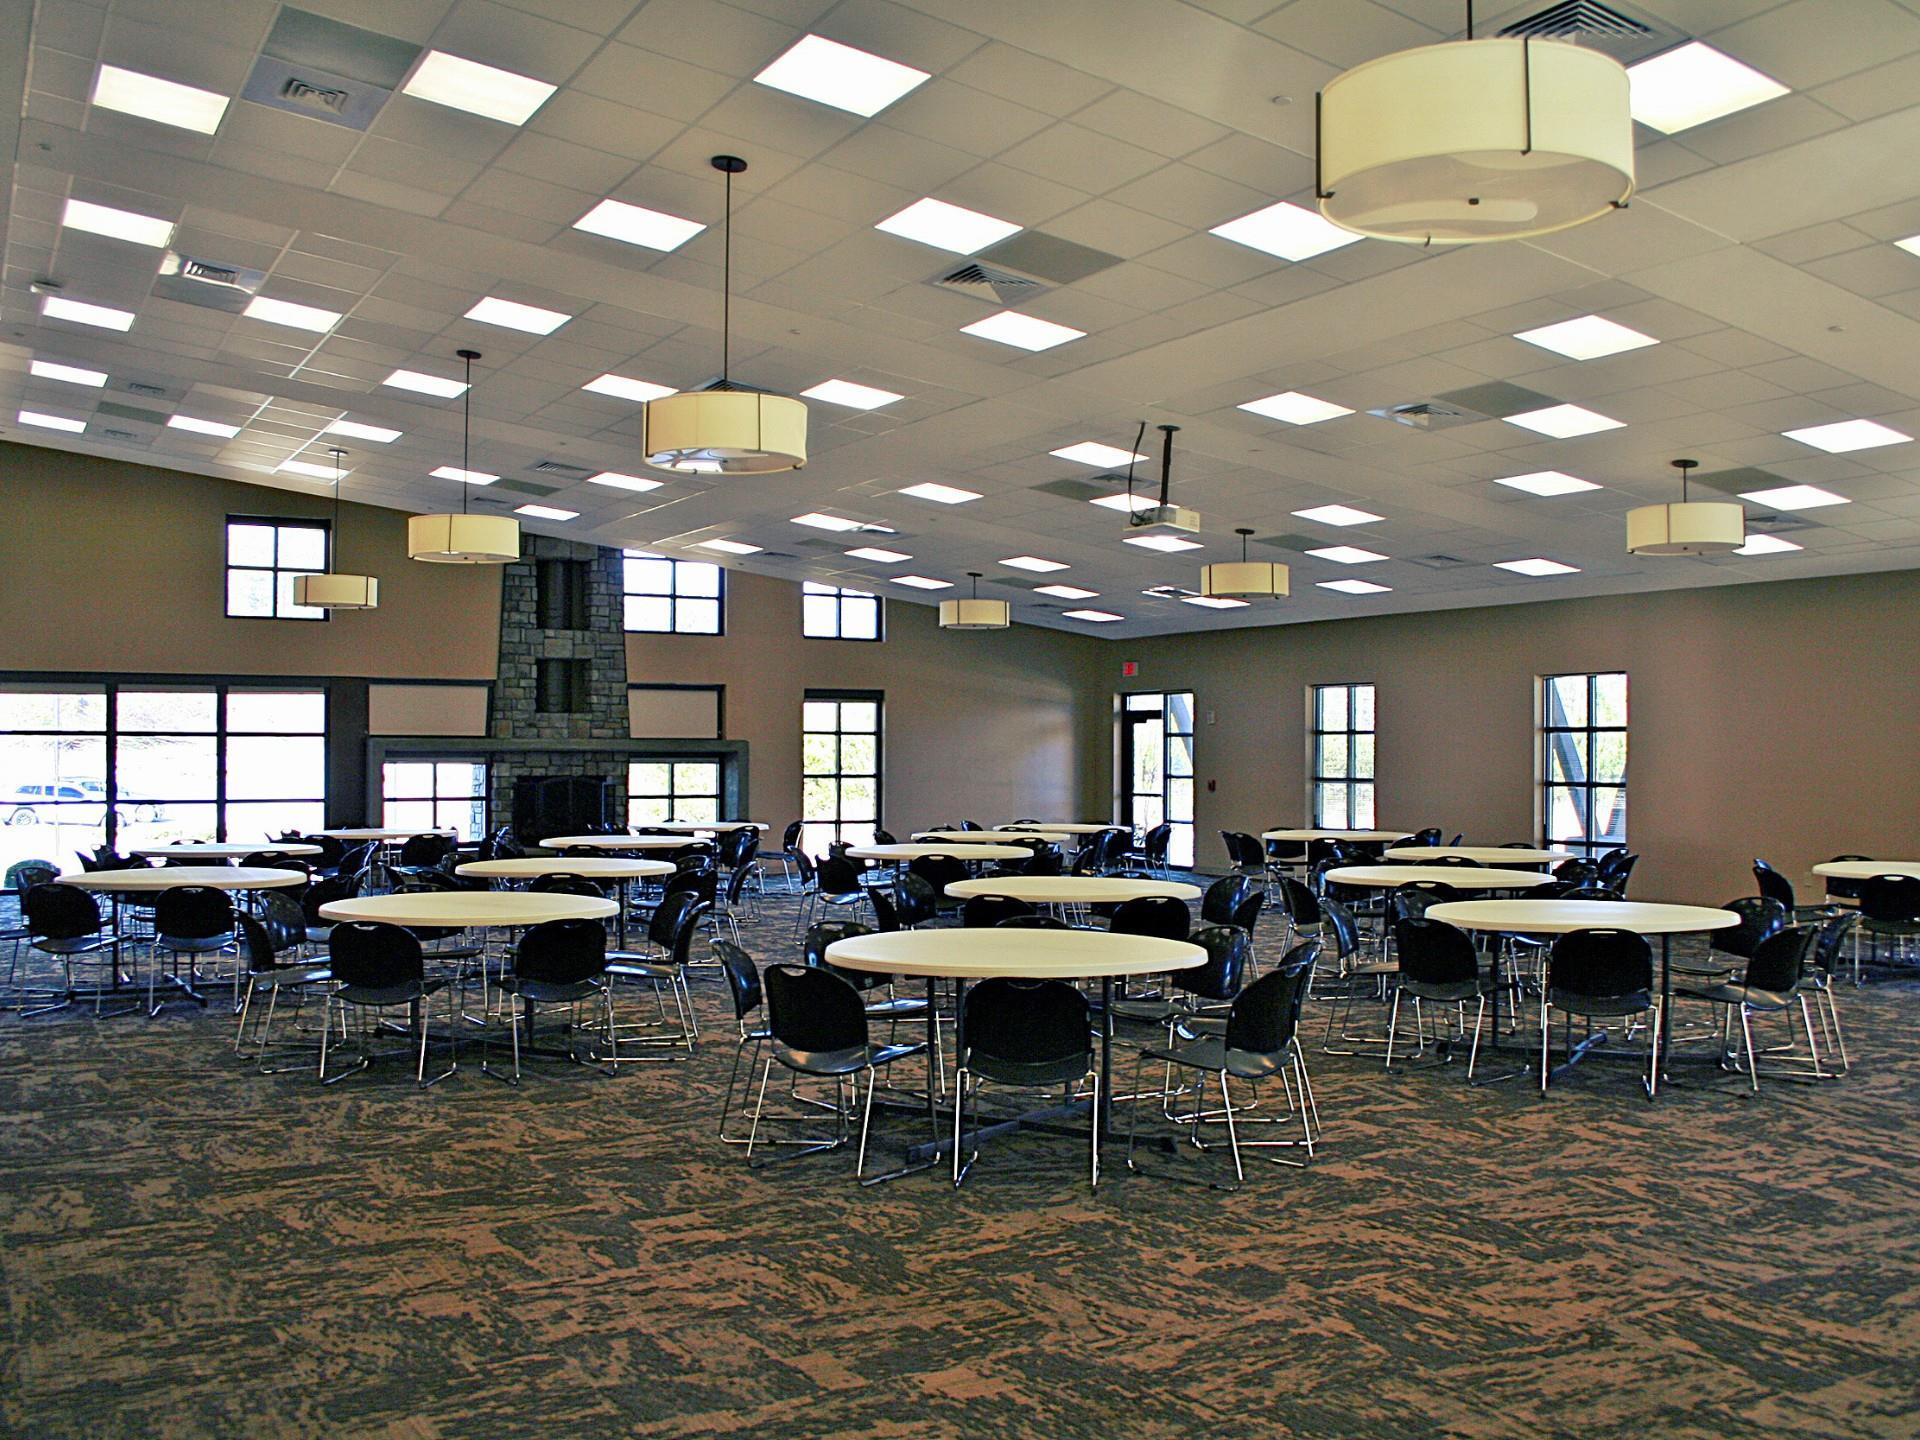 Large community center with round tables and chairs and fire place, lite by drop tile lights and several hanging fixtures